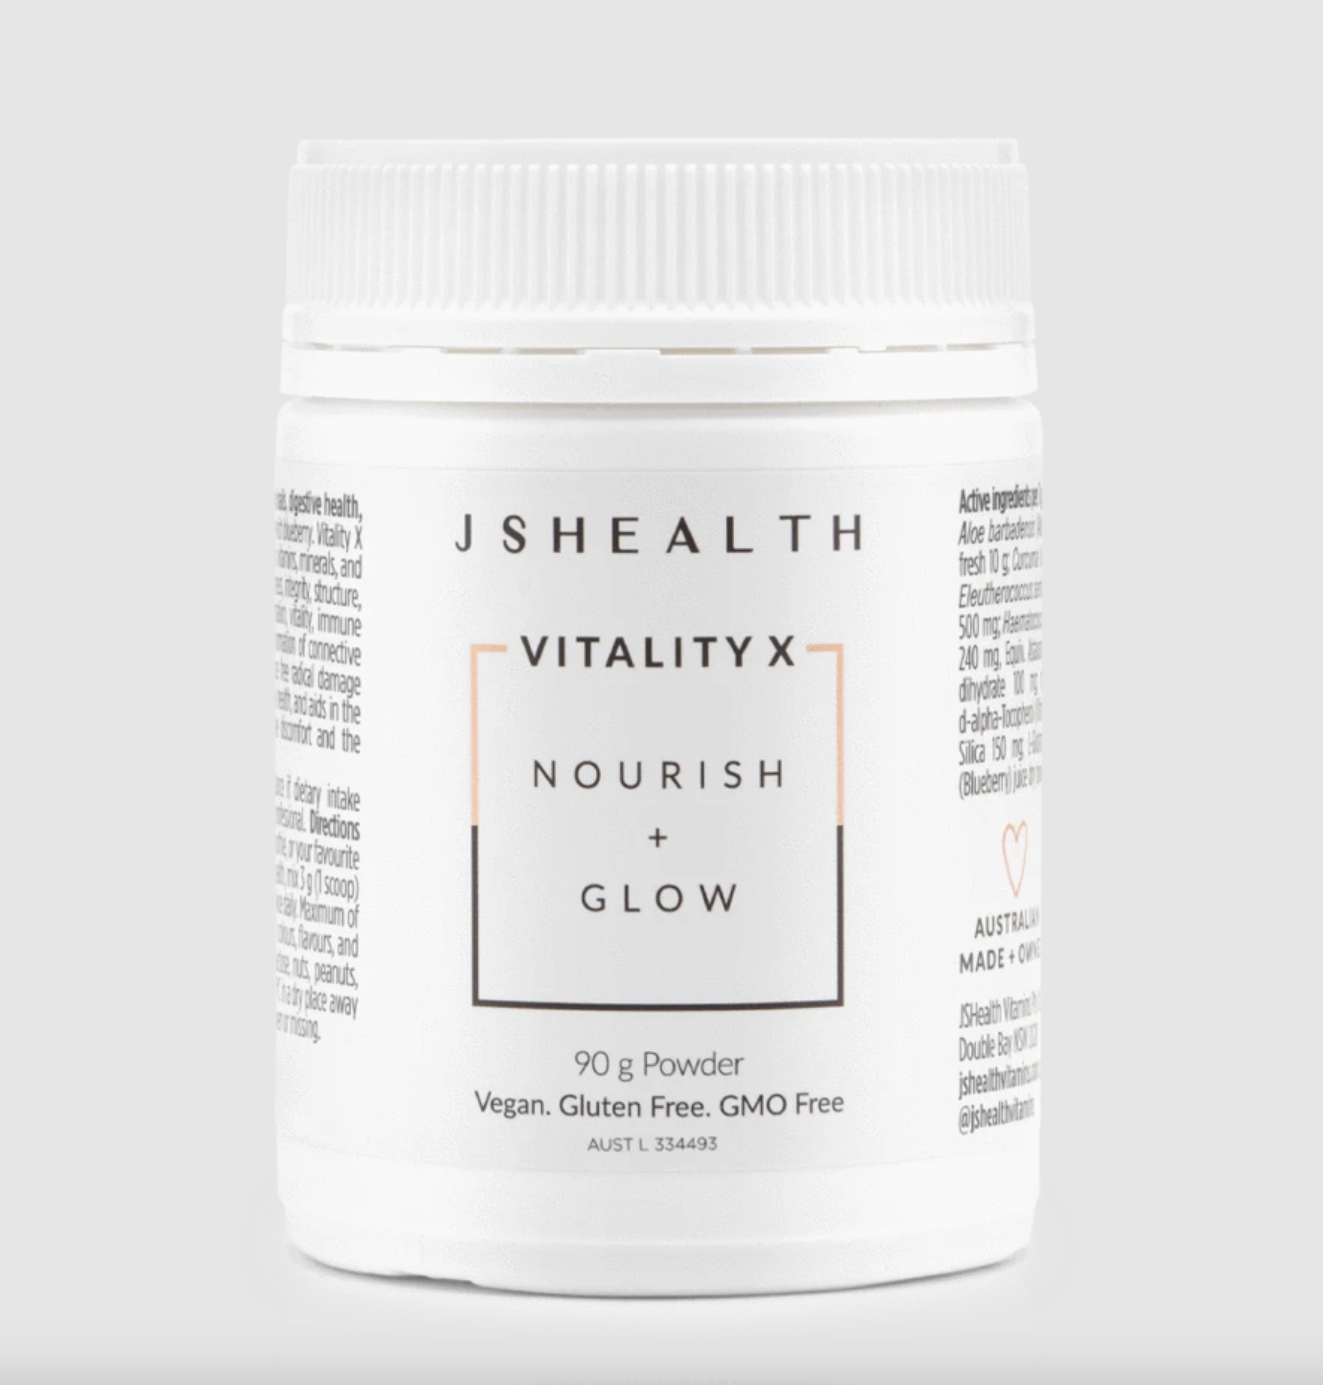 JSHealth Vitamins | Vitality X Nourish + Glow Powder | MVMNT LMTD